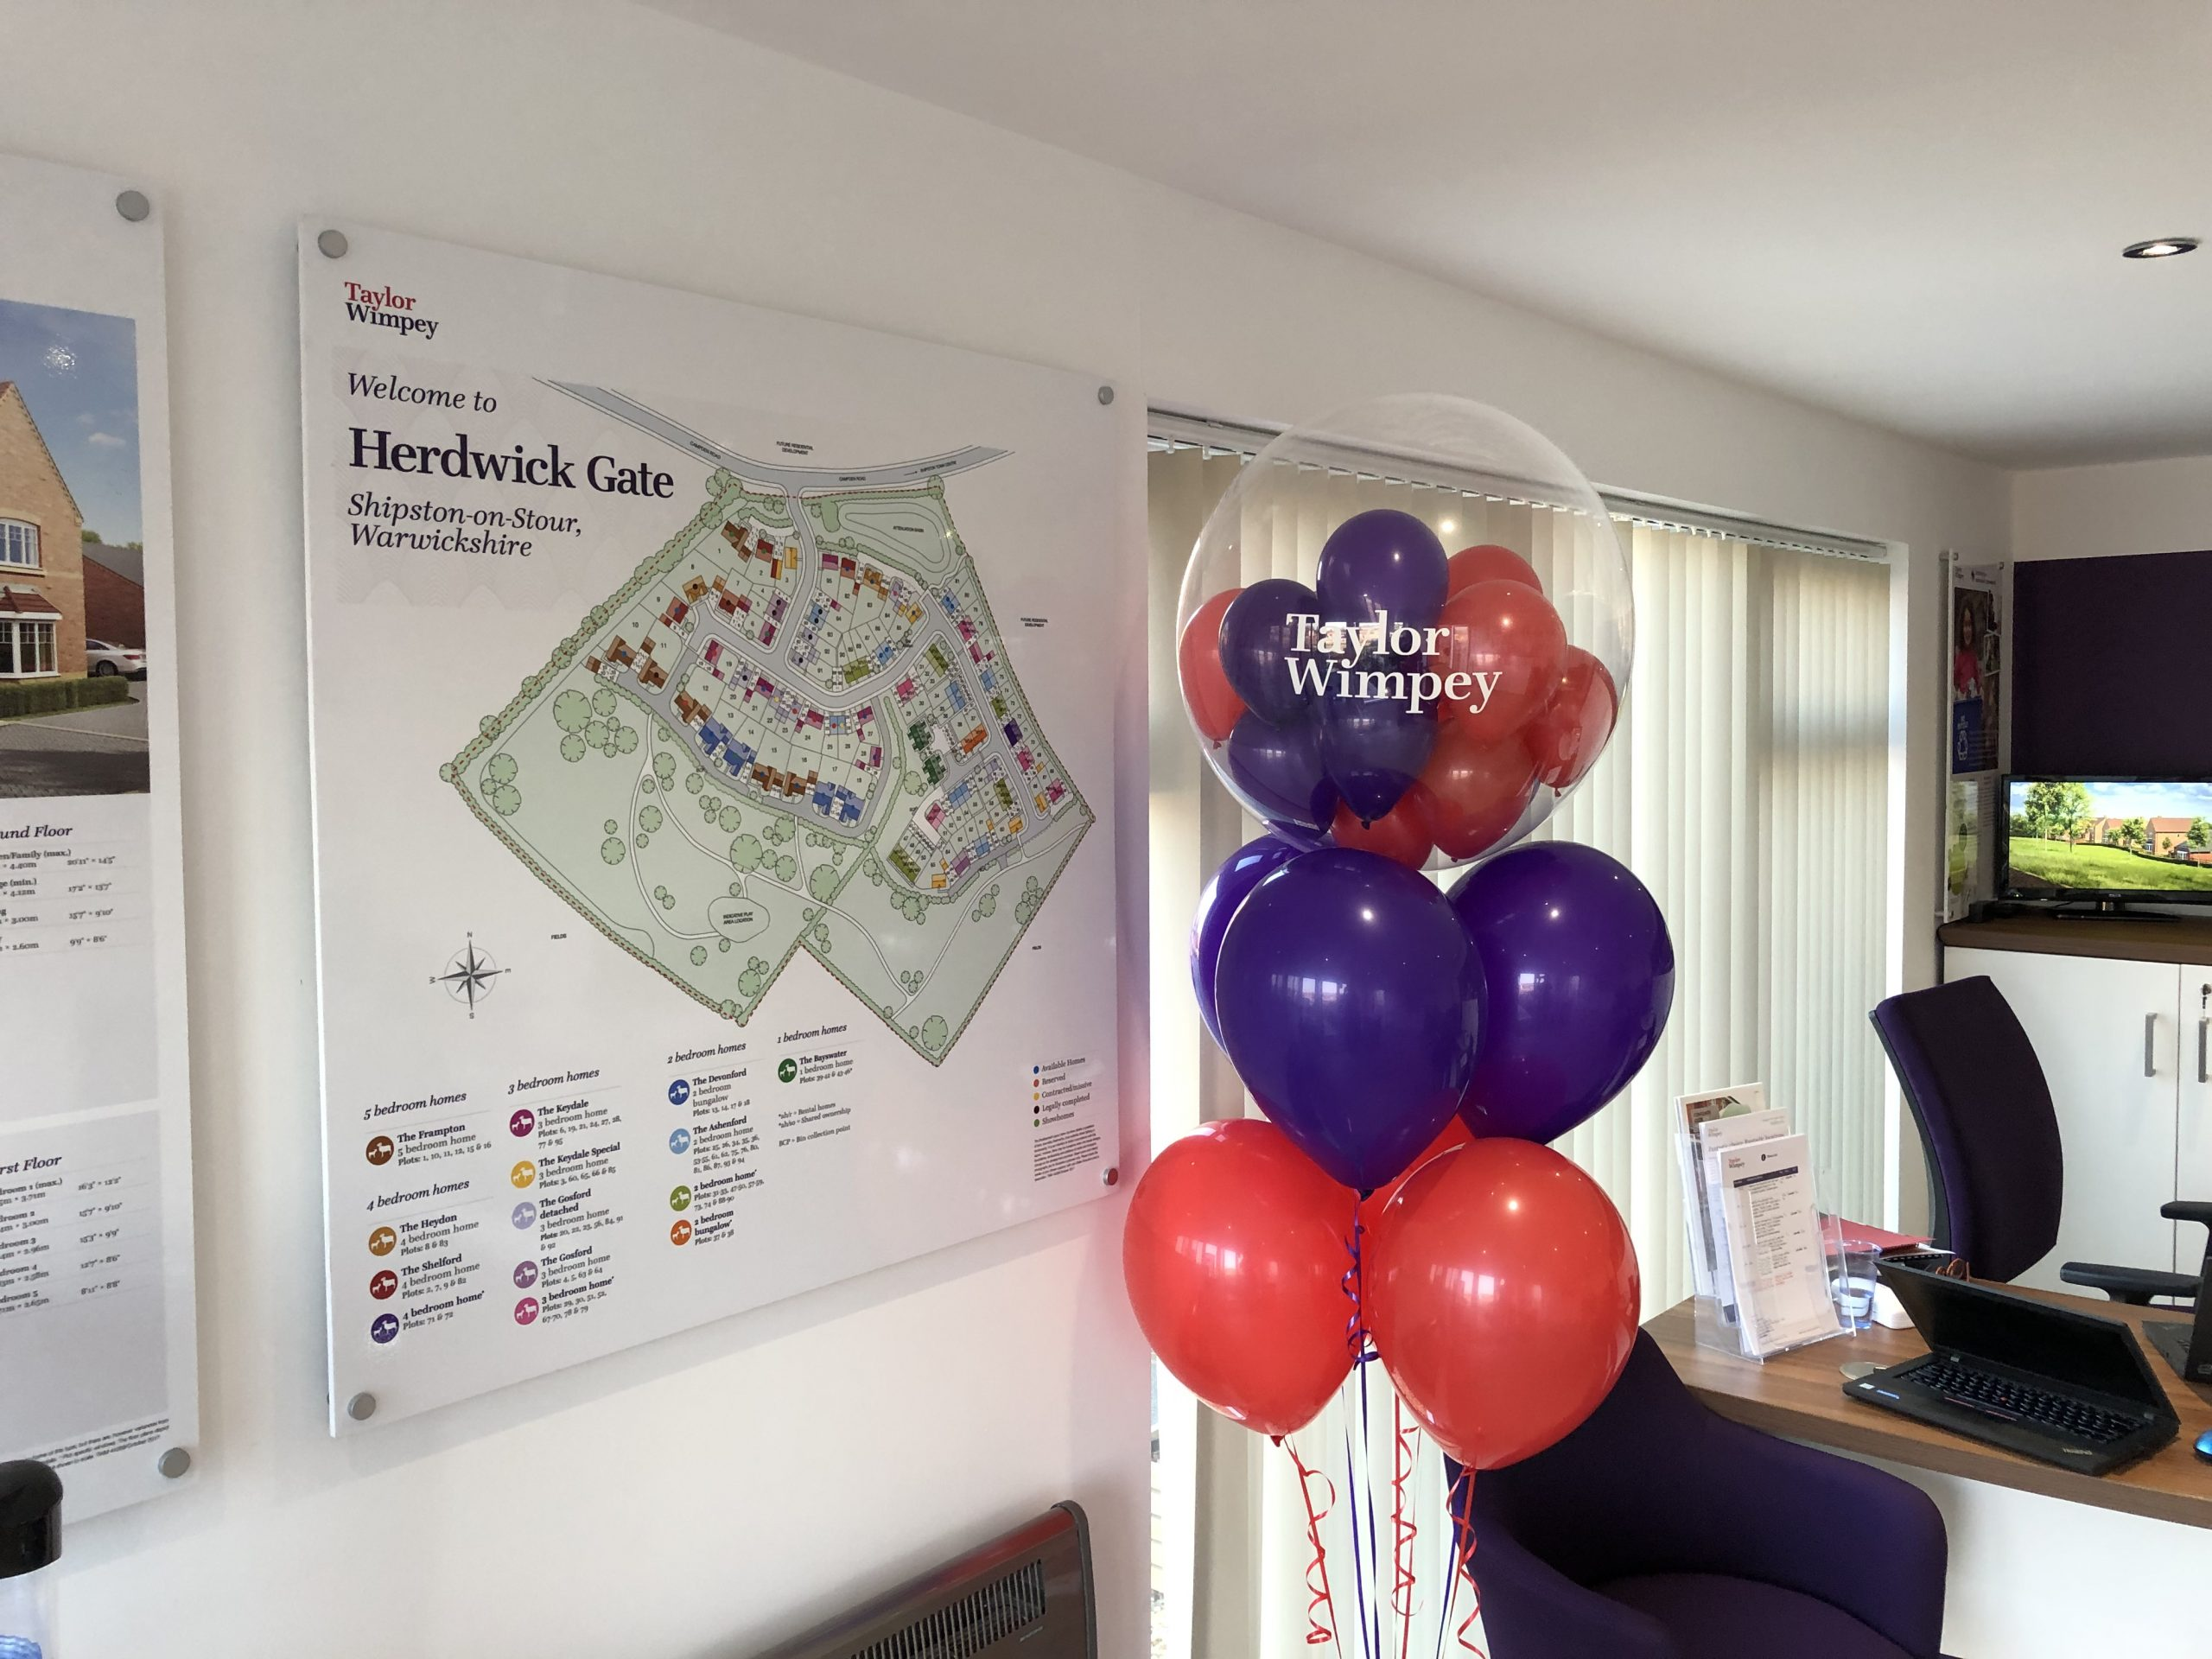 Taylor Wimpey Gumball Luxury Decoration